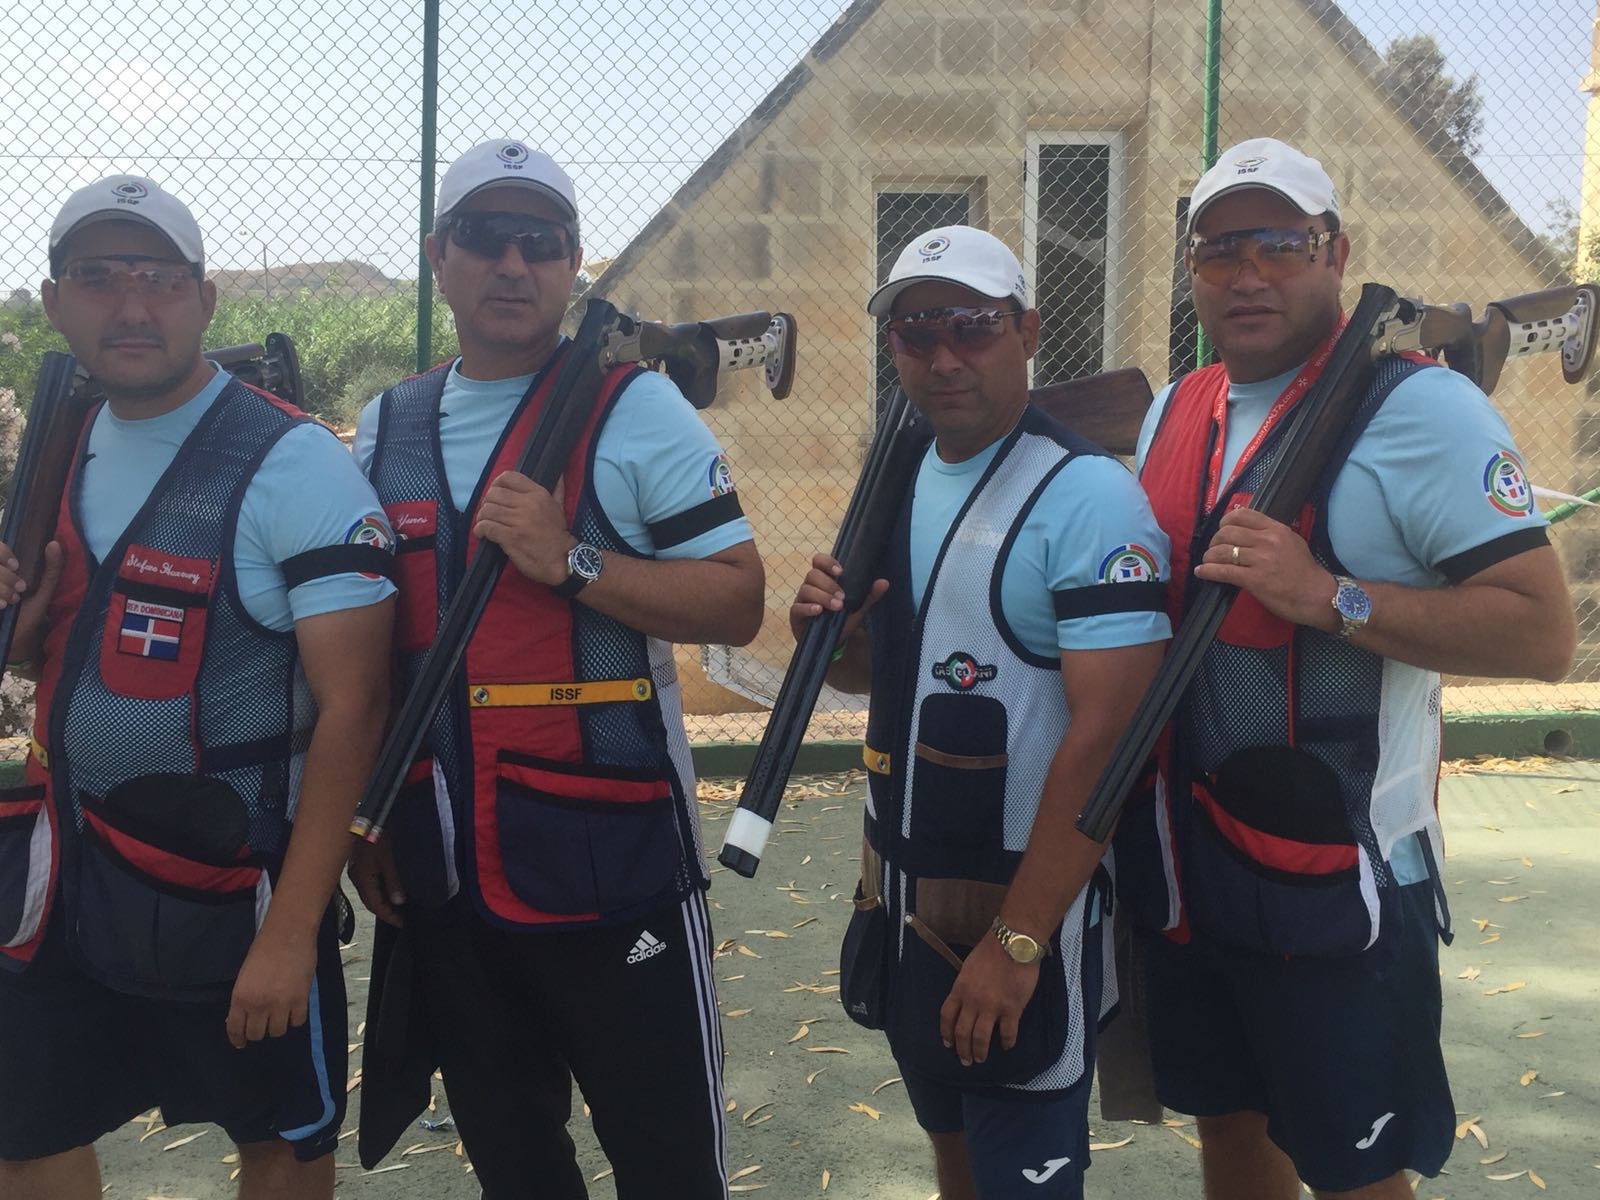 Dominican Republic competitors at the ISSF Shotgun World Cup in Malta wearing black armbands in support of Italy's suspended vice president Rossi ©FITAV